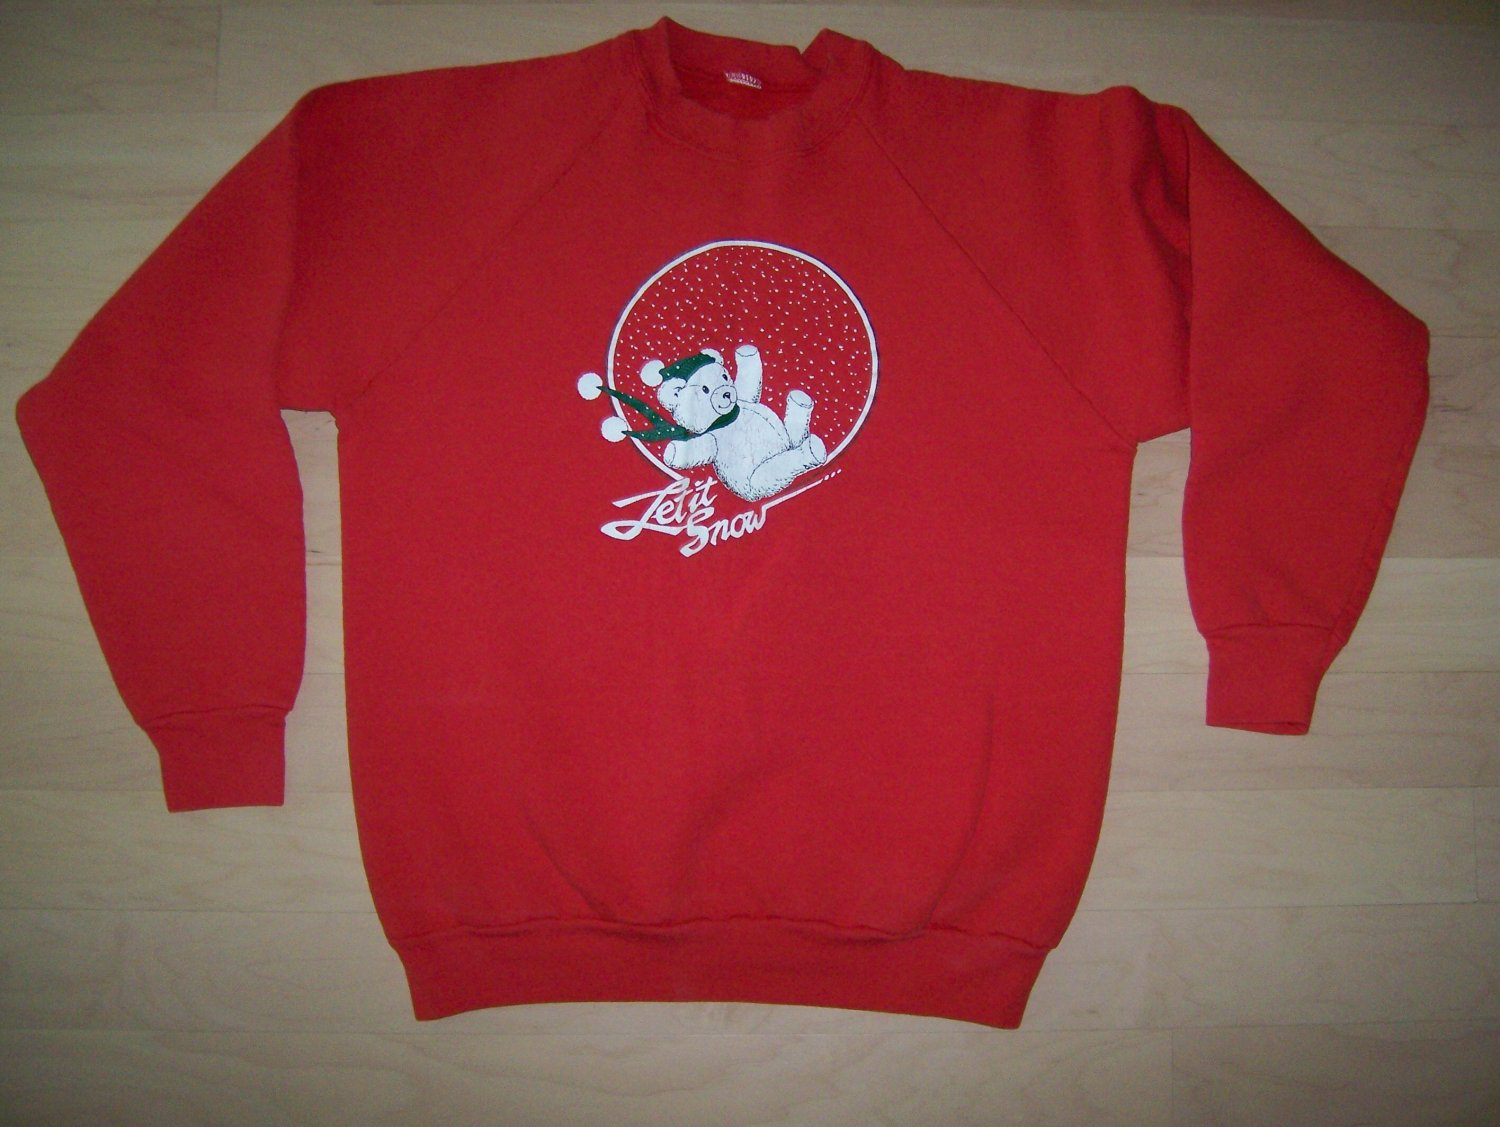 "Sweat Shirt ""Let It Snow""  Red Cotton Size 36  BNK1444"